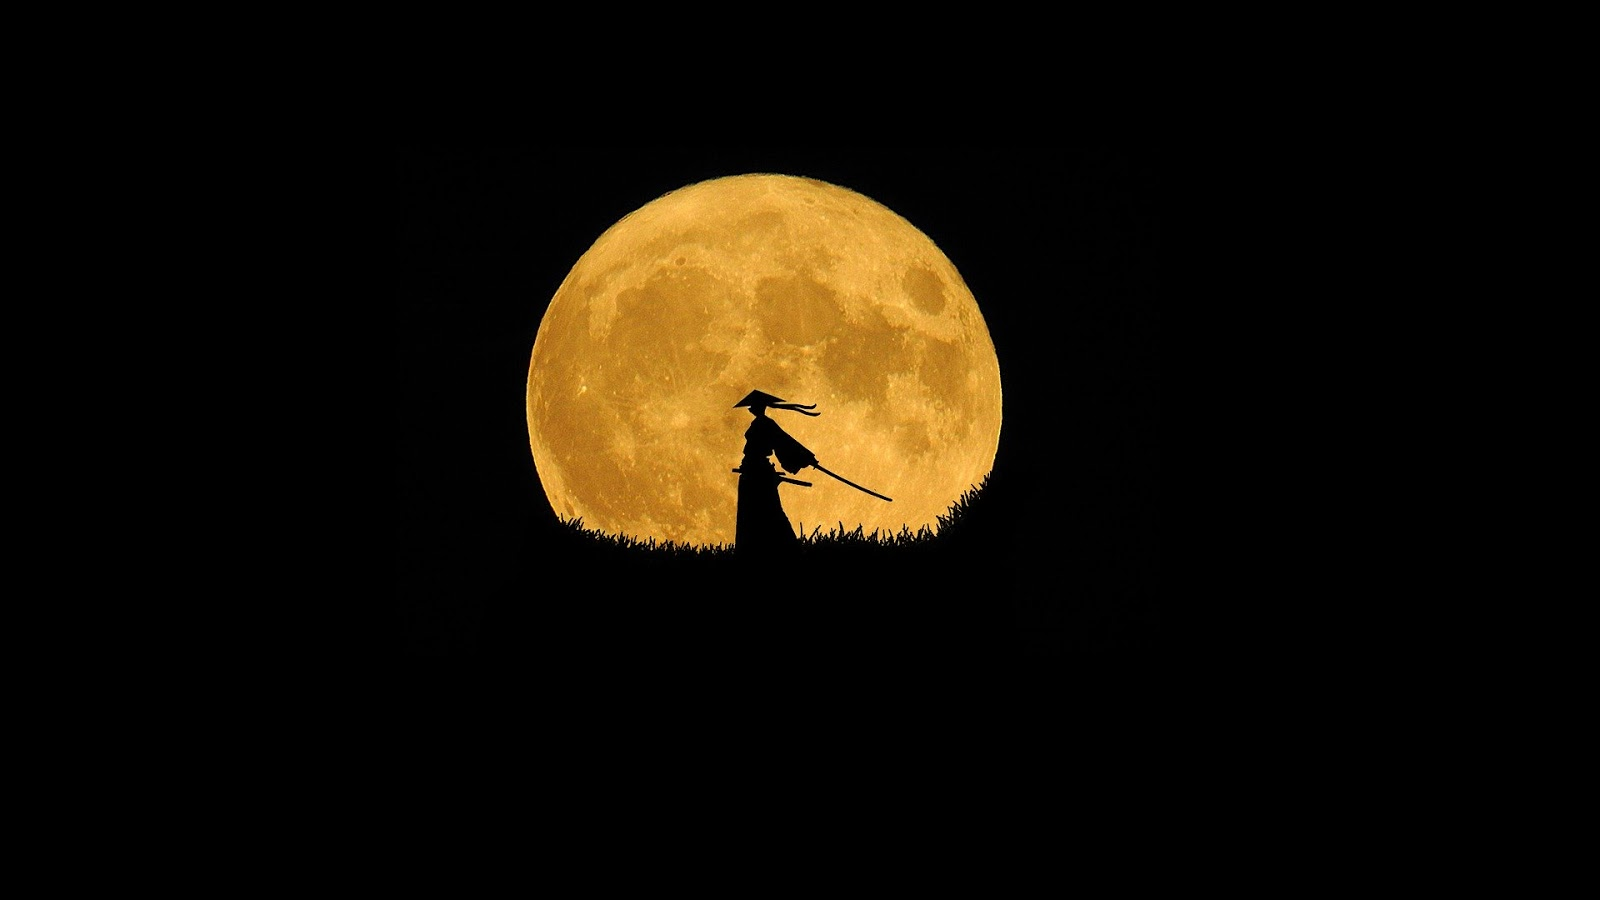 far away of a black background with a samurai sihlouetting a full moon for blog post about war movie suicide missions